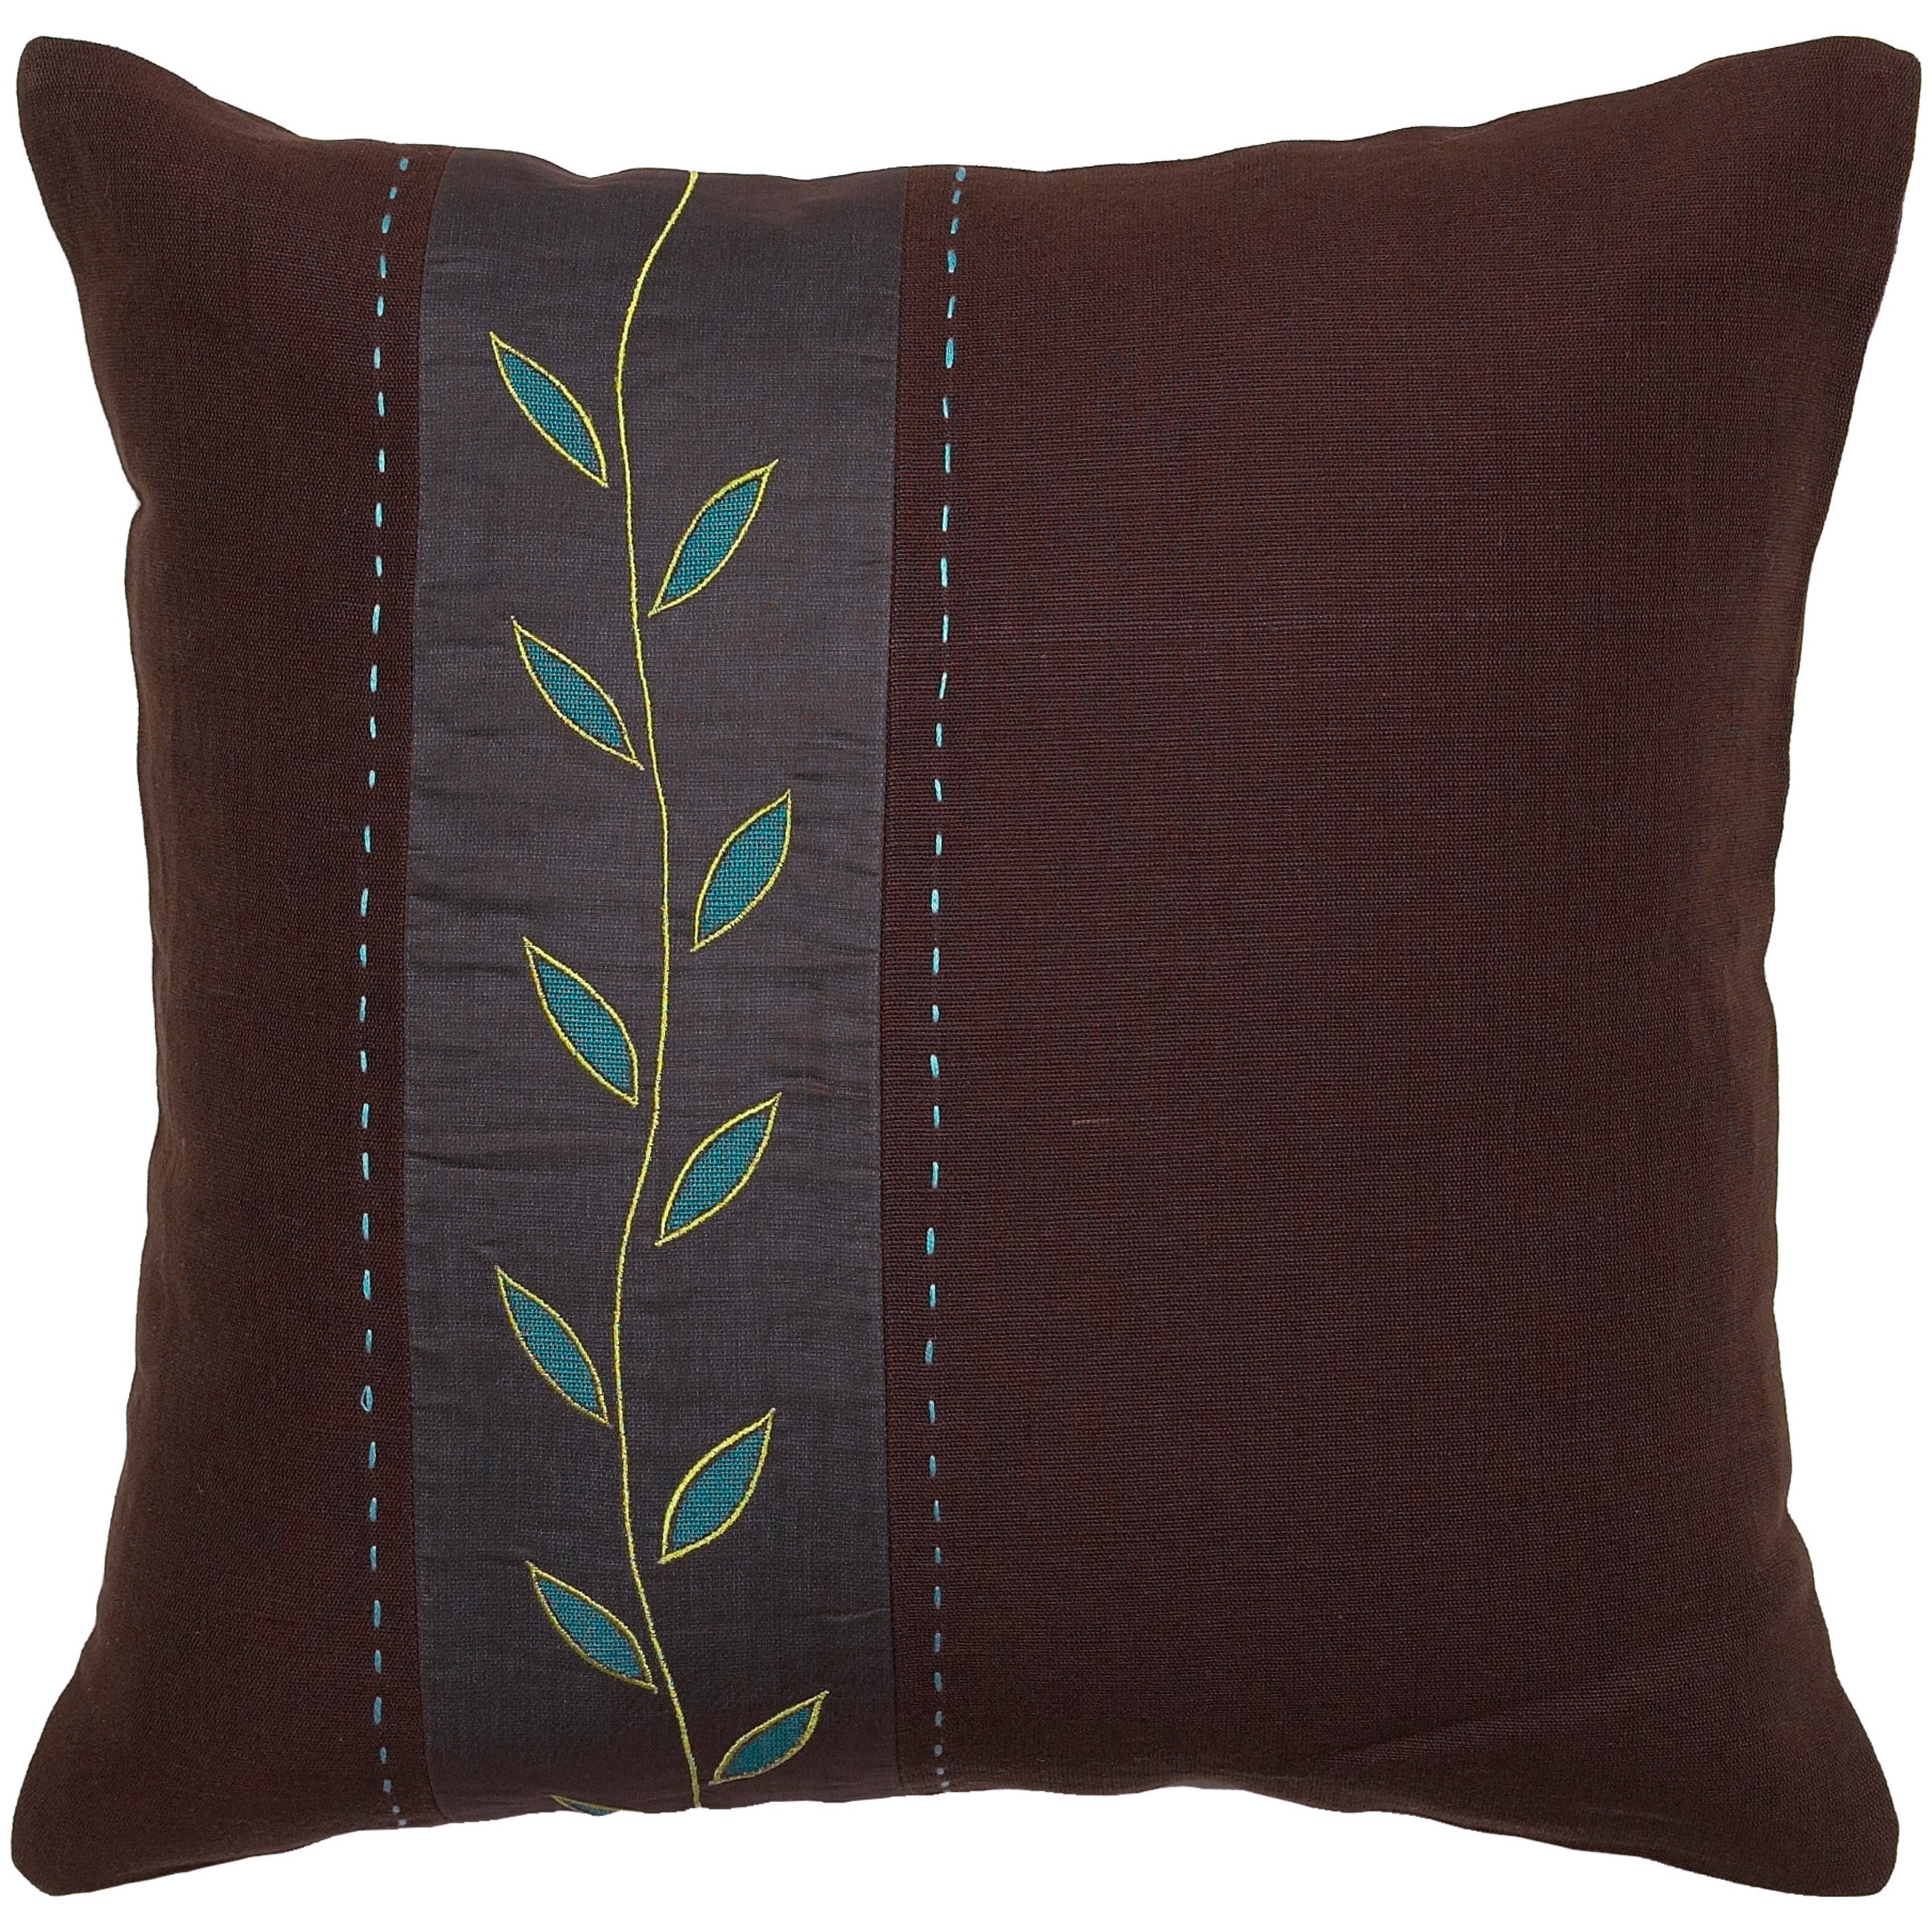 Mattie Brown/ Green Vine Decorative Pillow - Thumbnail 0